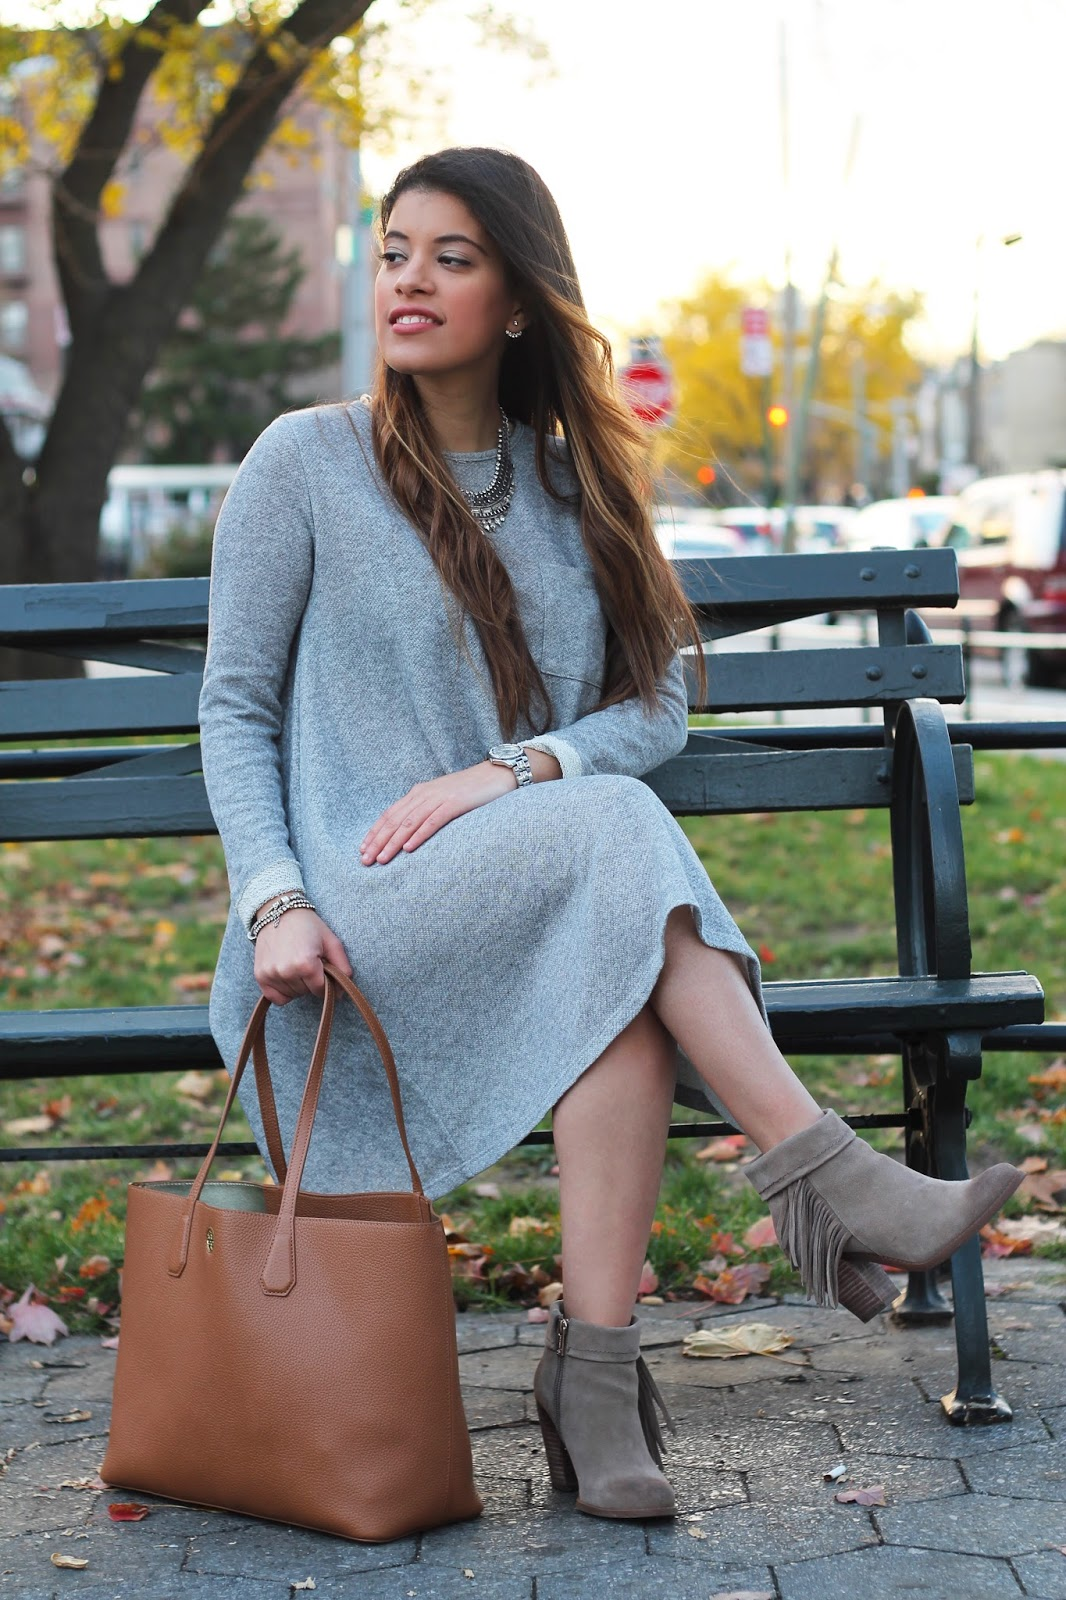 tory burch, shop the mint, the mint julep boutique, boutique, perry tote, tunic dress, guess, forever 21, fall, winter, style, woman, collab, booties, new york, new york blogger, shopthemint, gray, fall style, winter style, tunic dress, latina